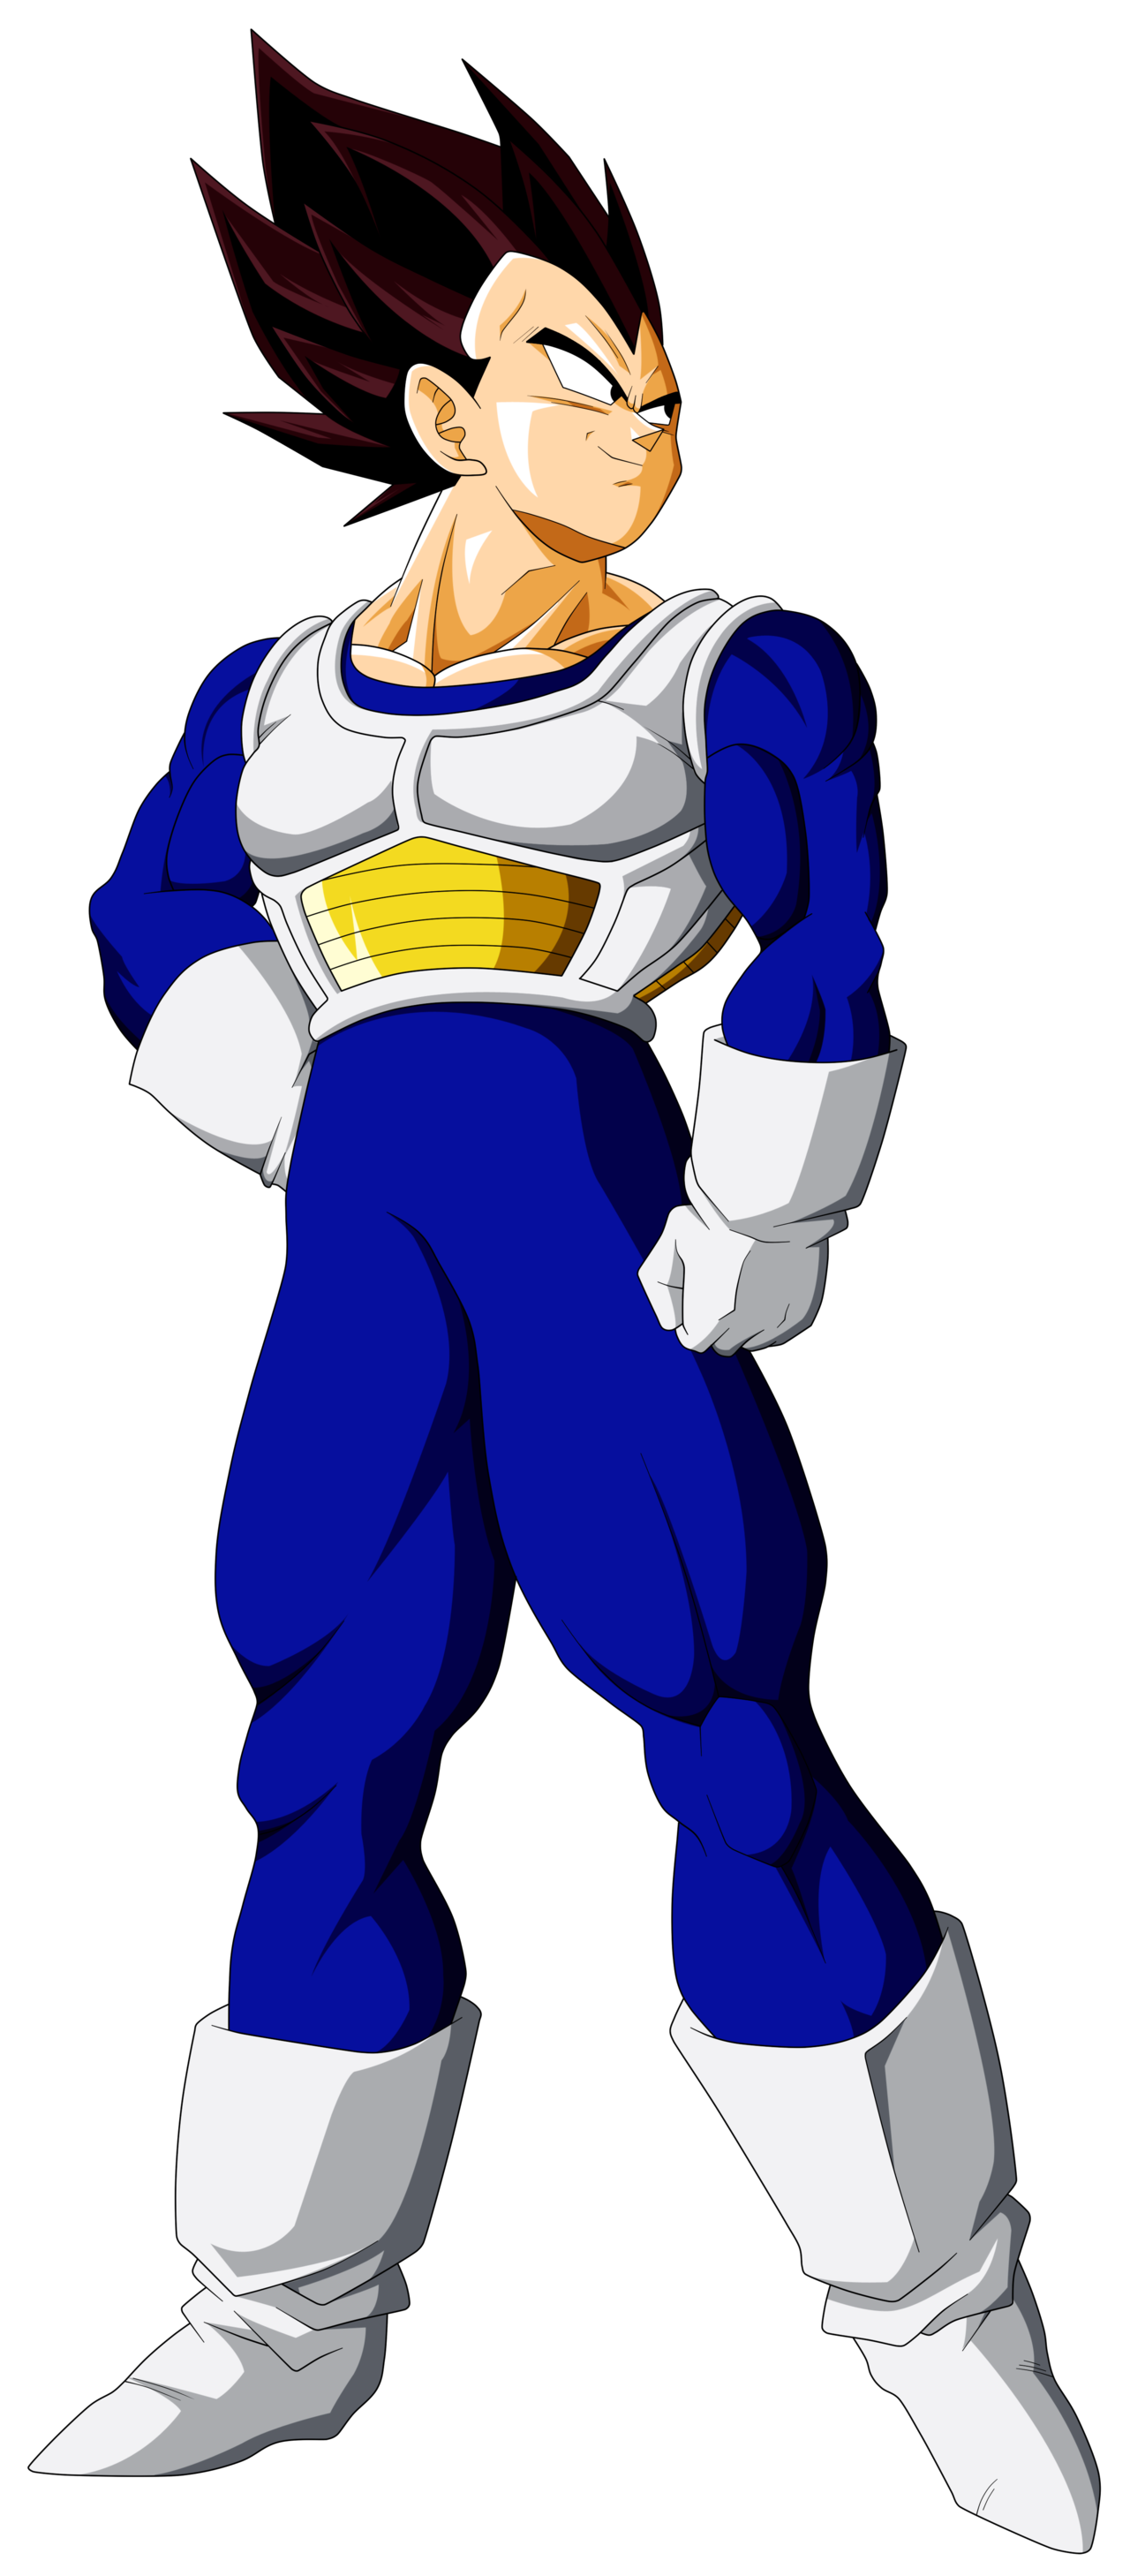 Vegeta (BH saga's alternative timeline)